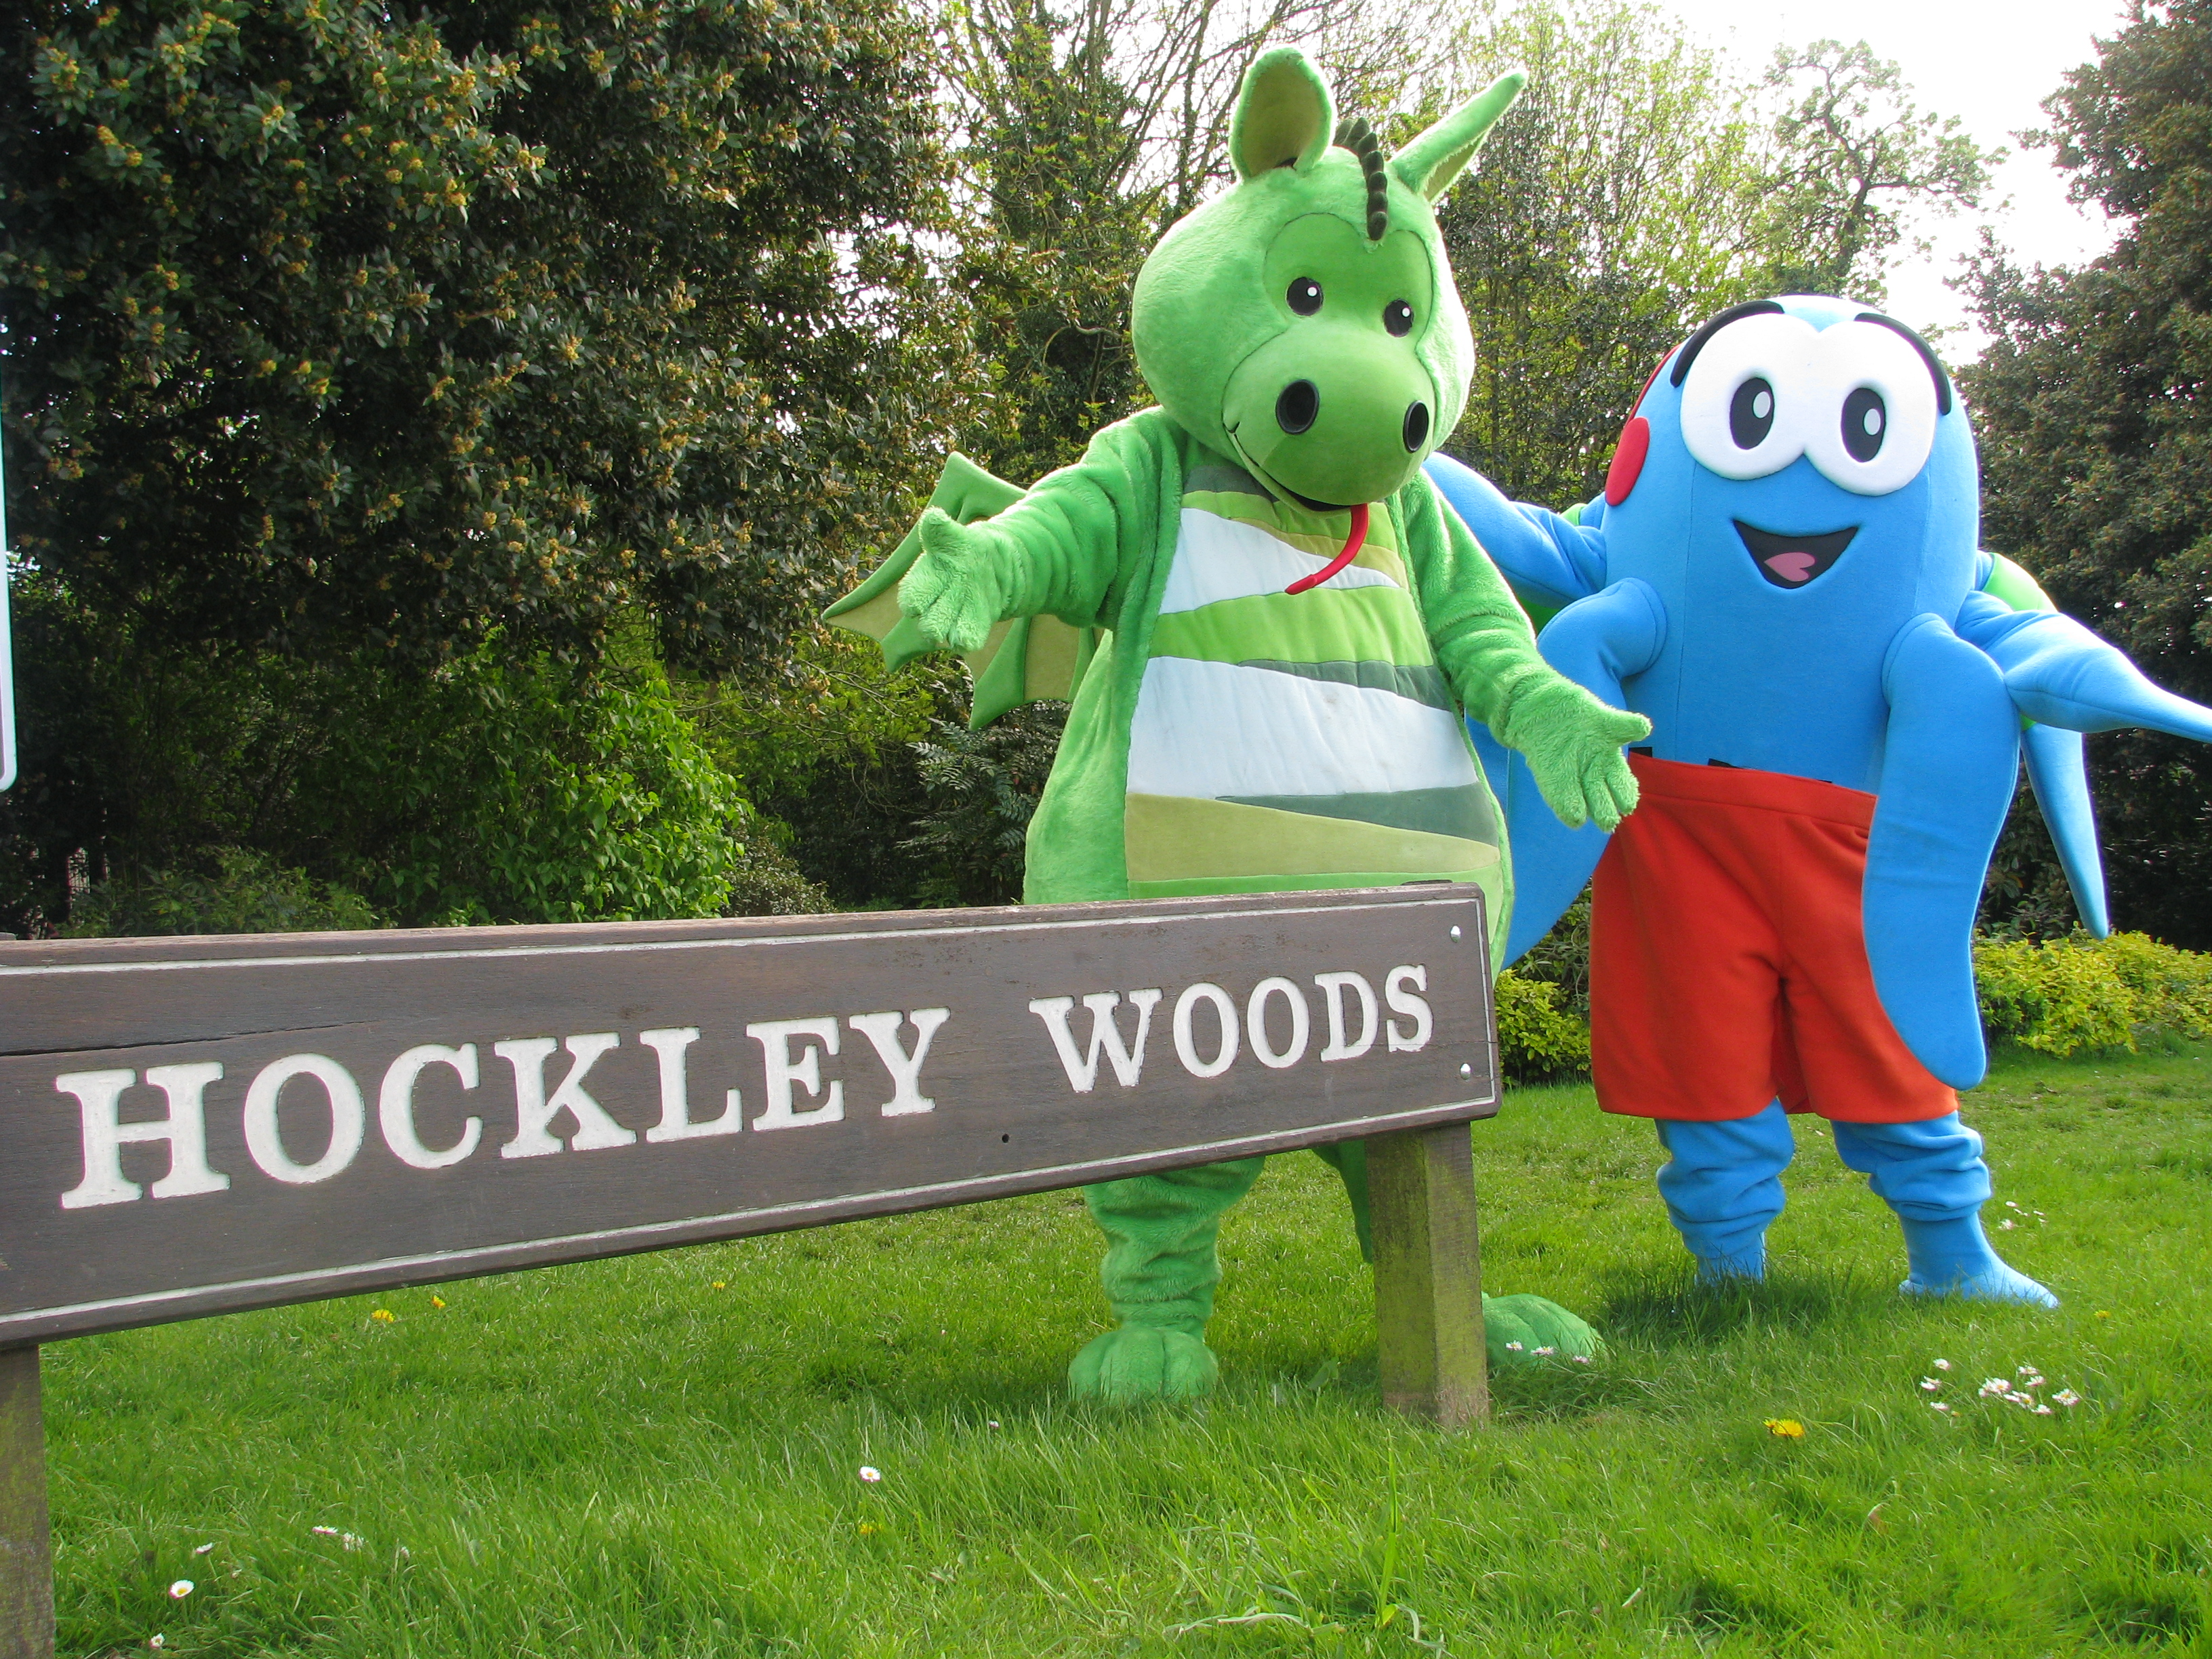 Image of Rochford District Council mascots standing besides Hockley Woods sign